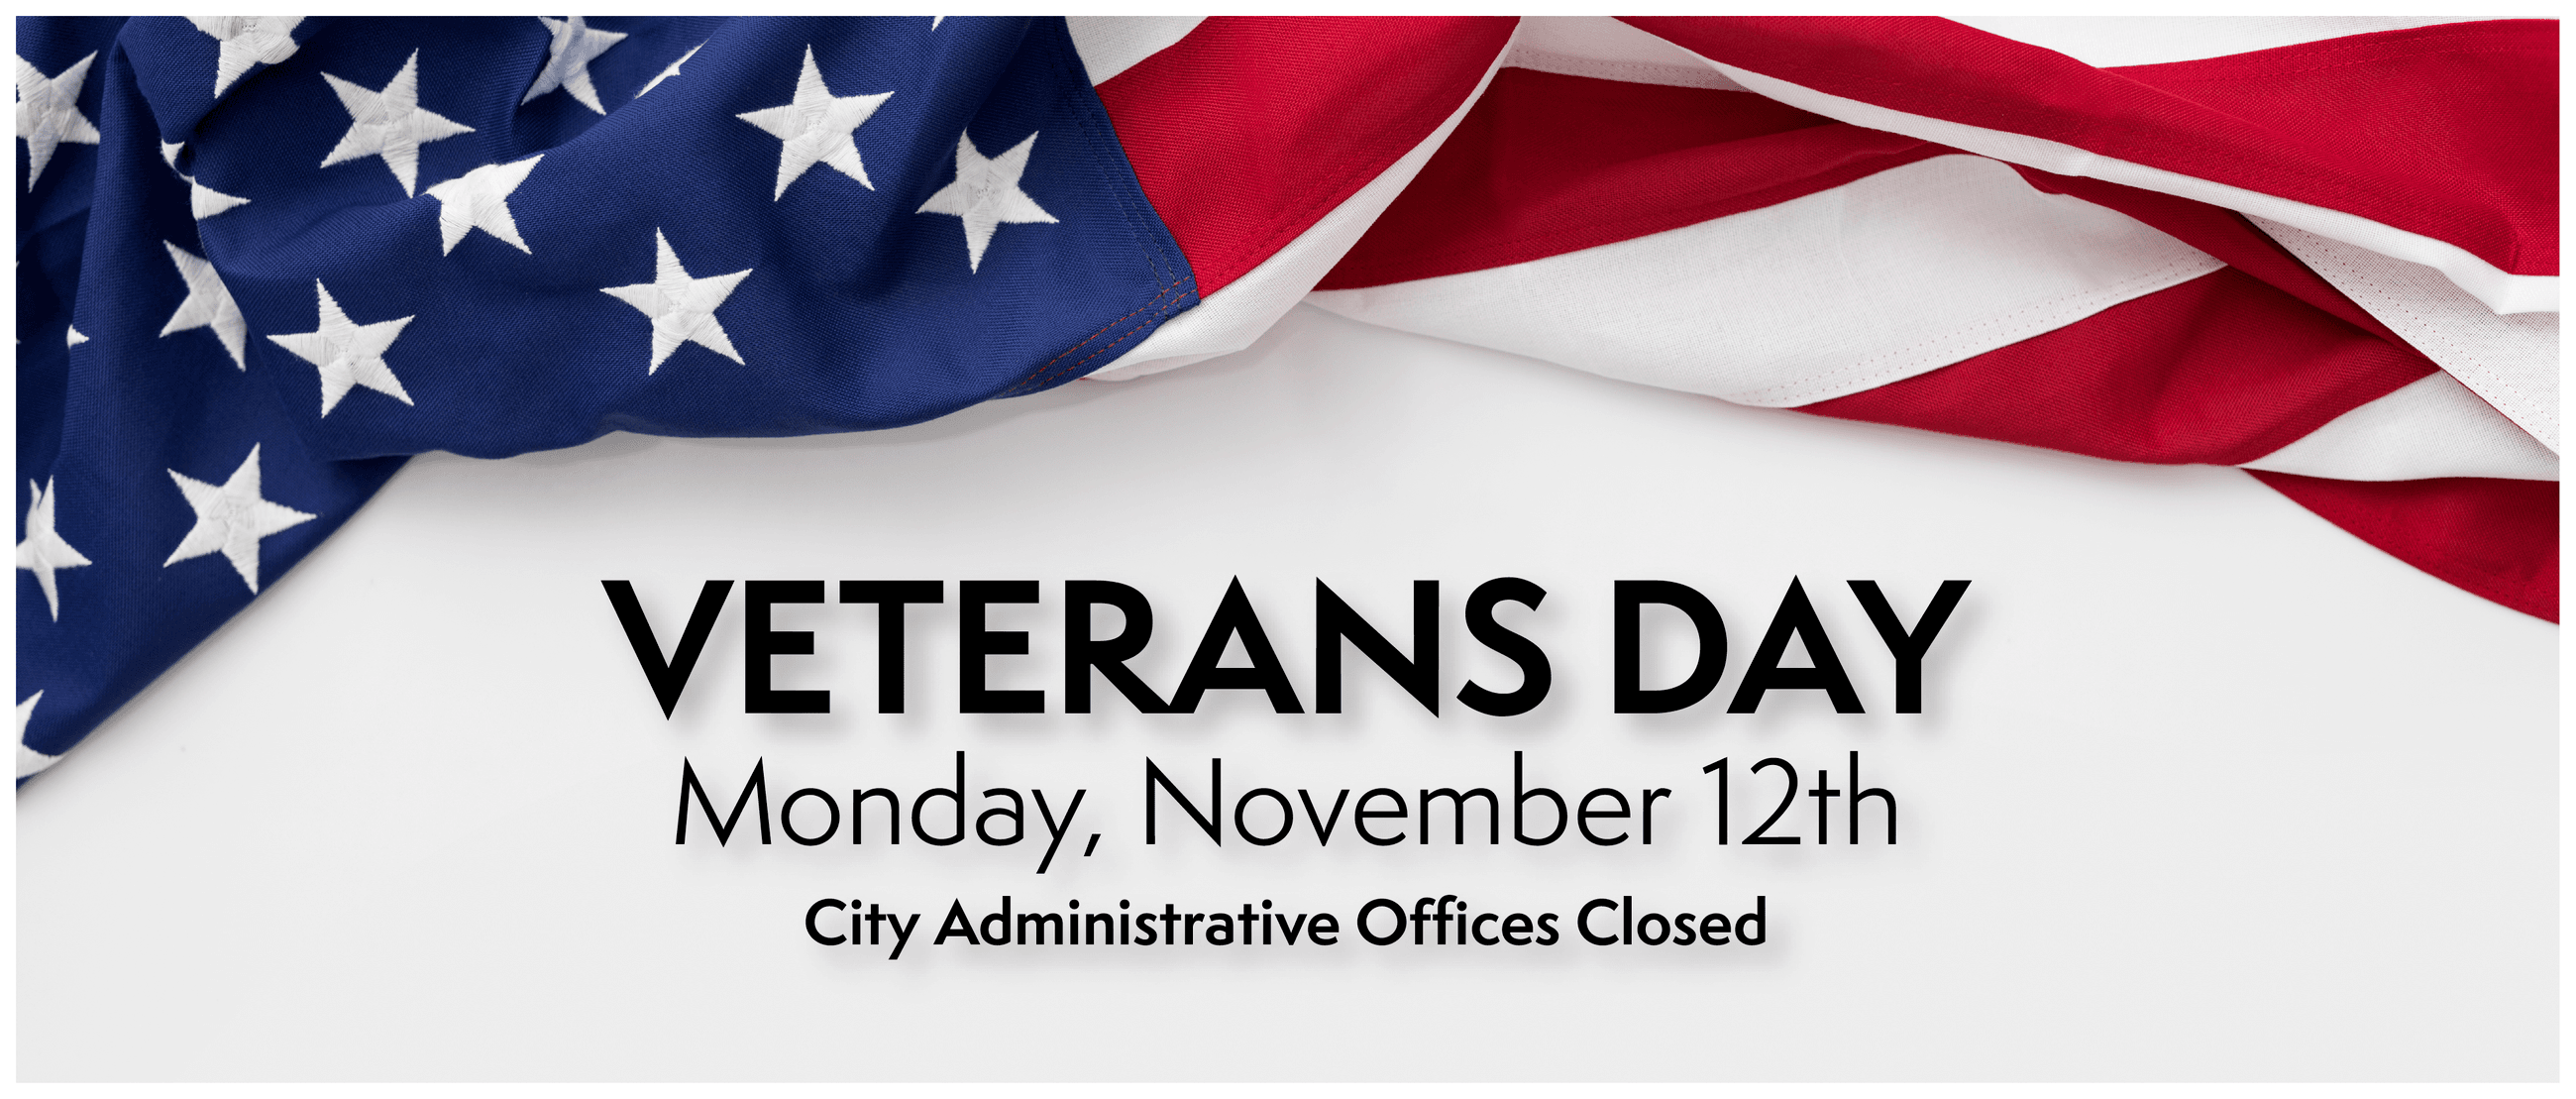 City Hall closed on Monday, November 12th in observance of Veterans Day